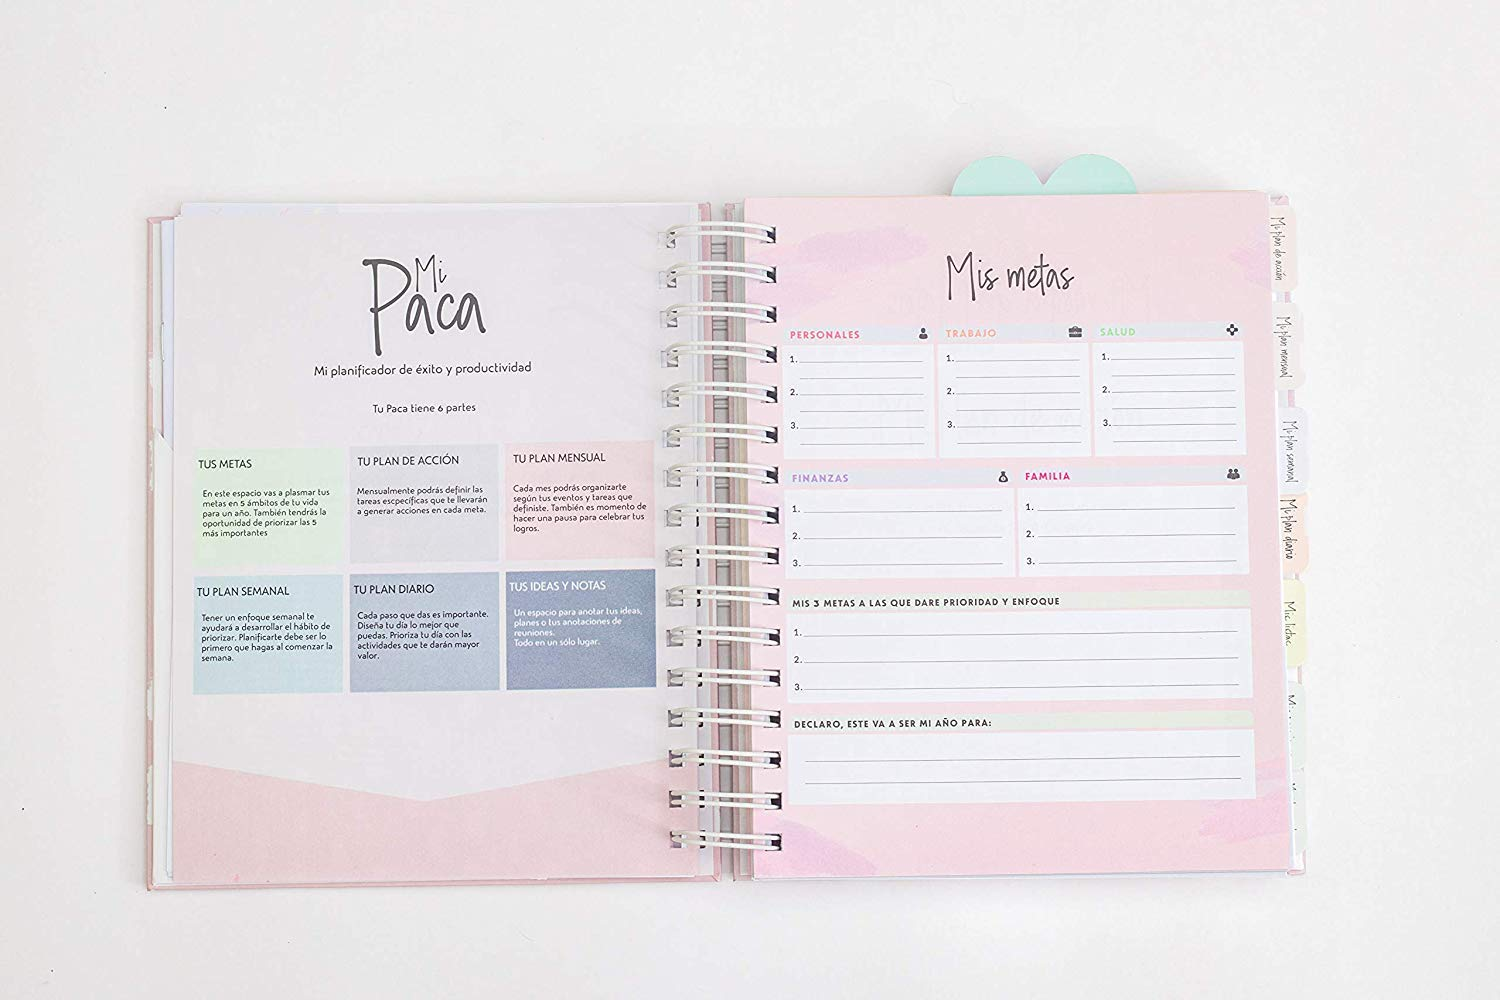 Mi Paca Planner Undated Agenda - Organizer and Calendar for Women - Achieve Your Goals, Increase Productivity and Happiness - Daily, Weekly, Monthly ...